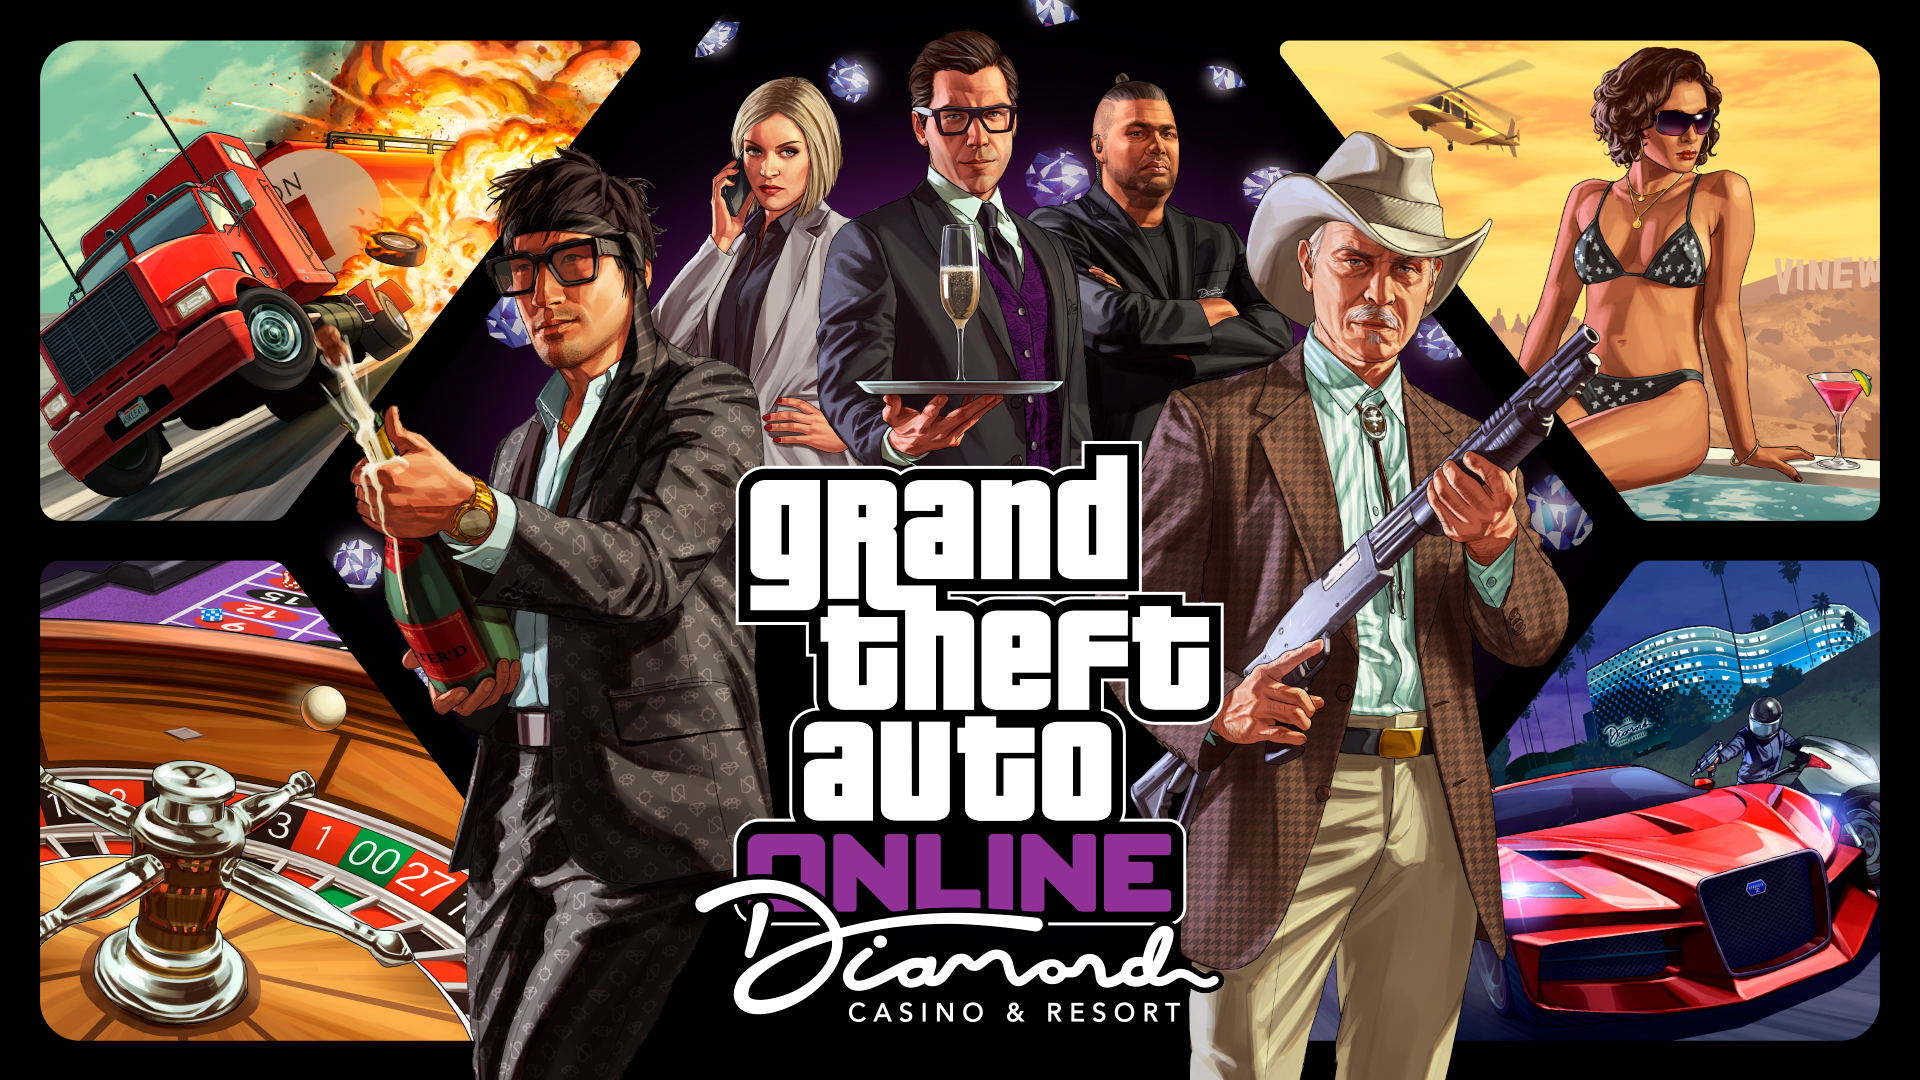 Grand Theft Auto Gta V Game Free Download For Ps4 Mobituner